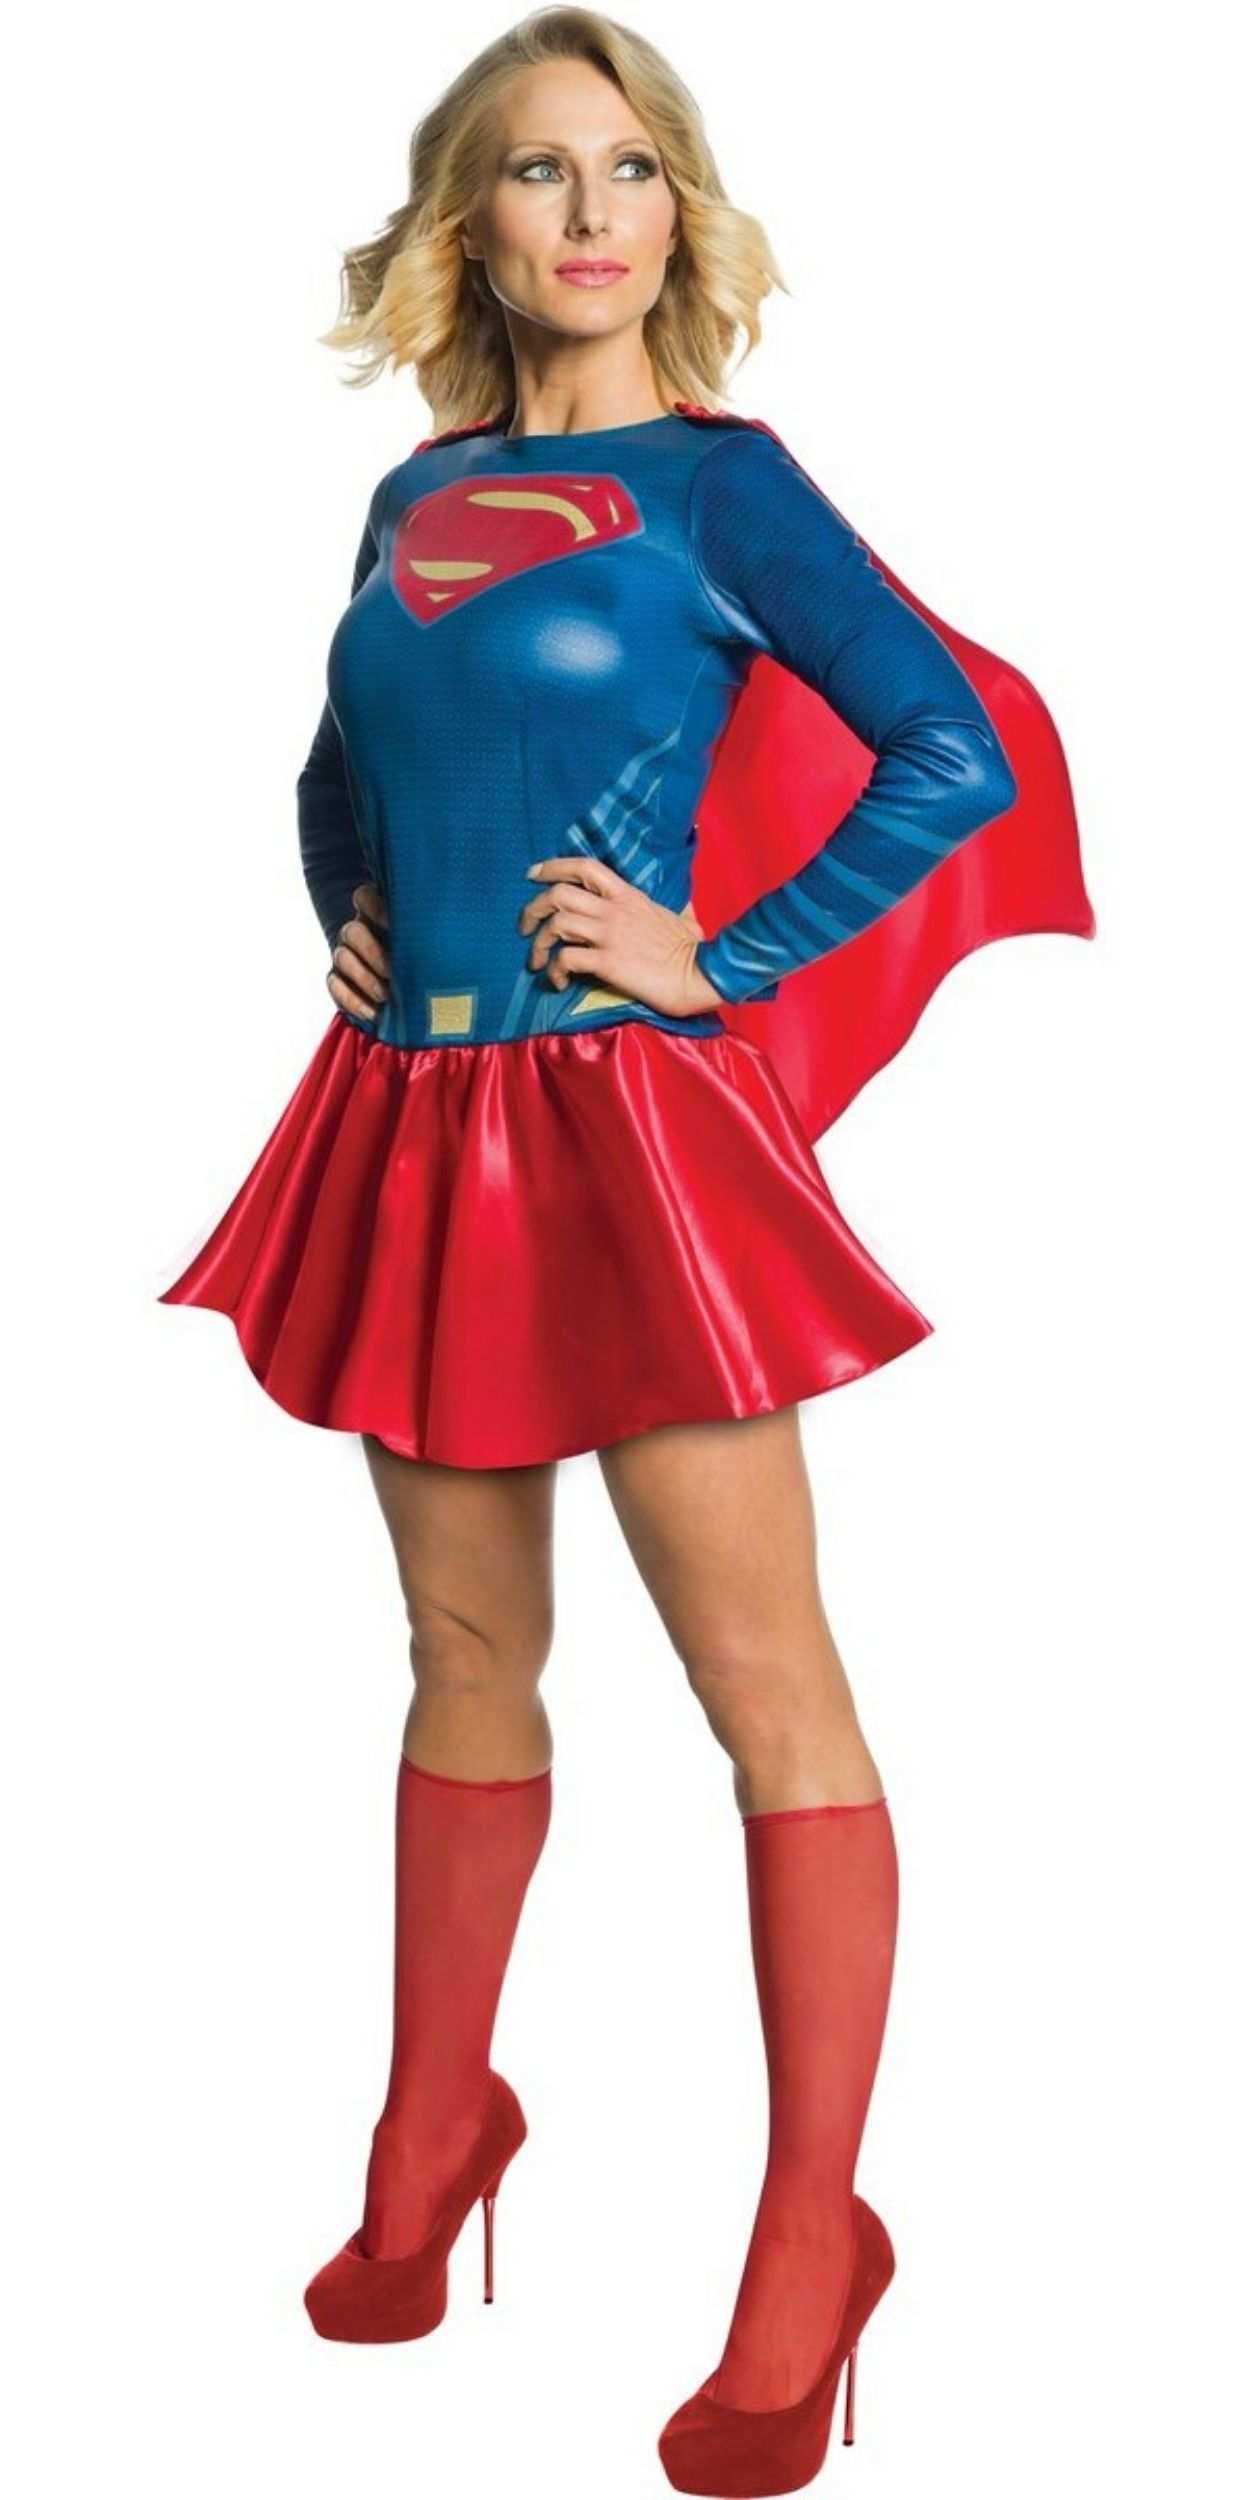 Woman in Supergirl Party Costume